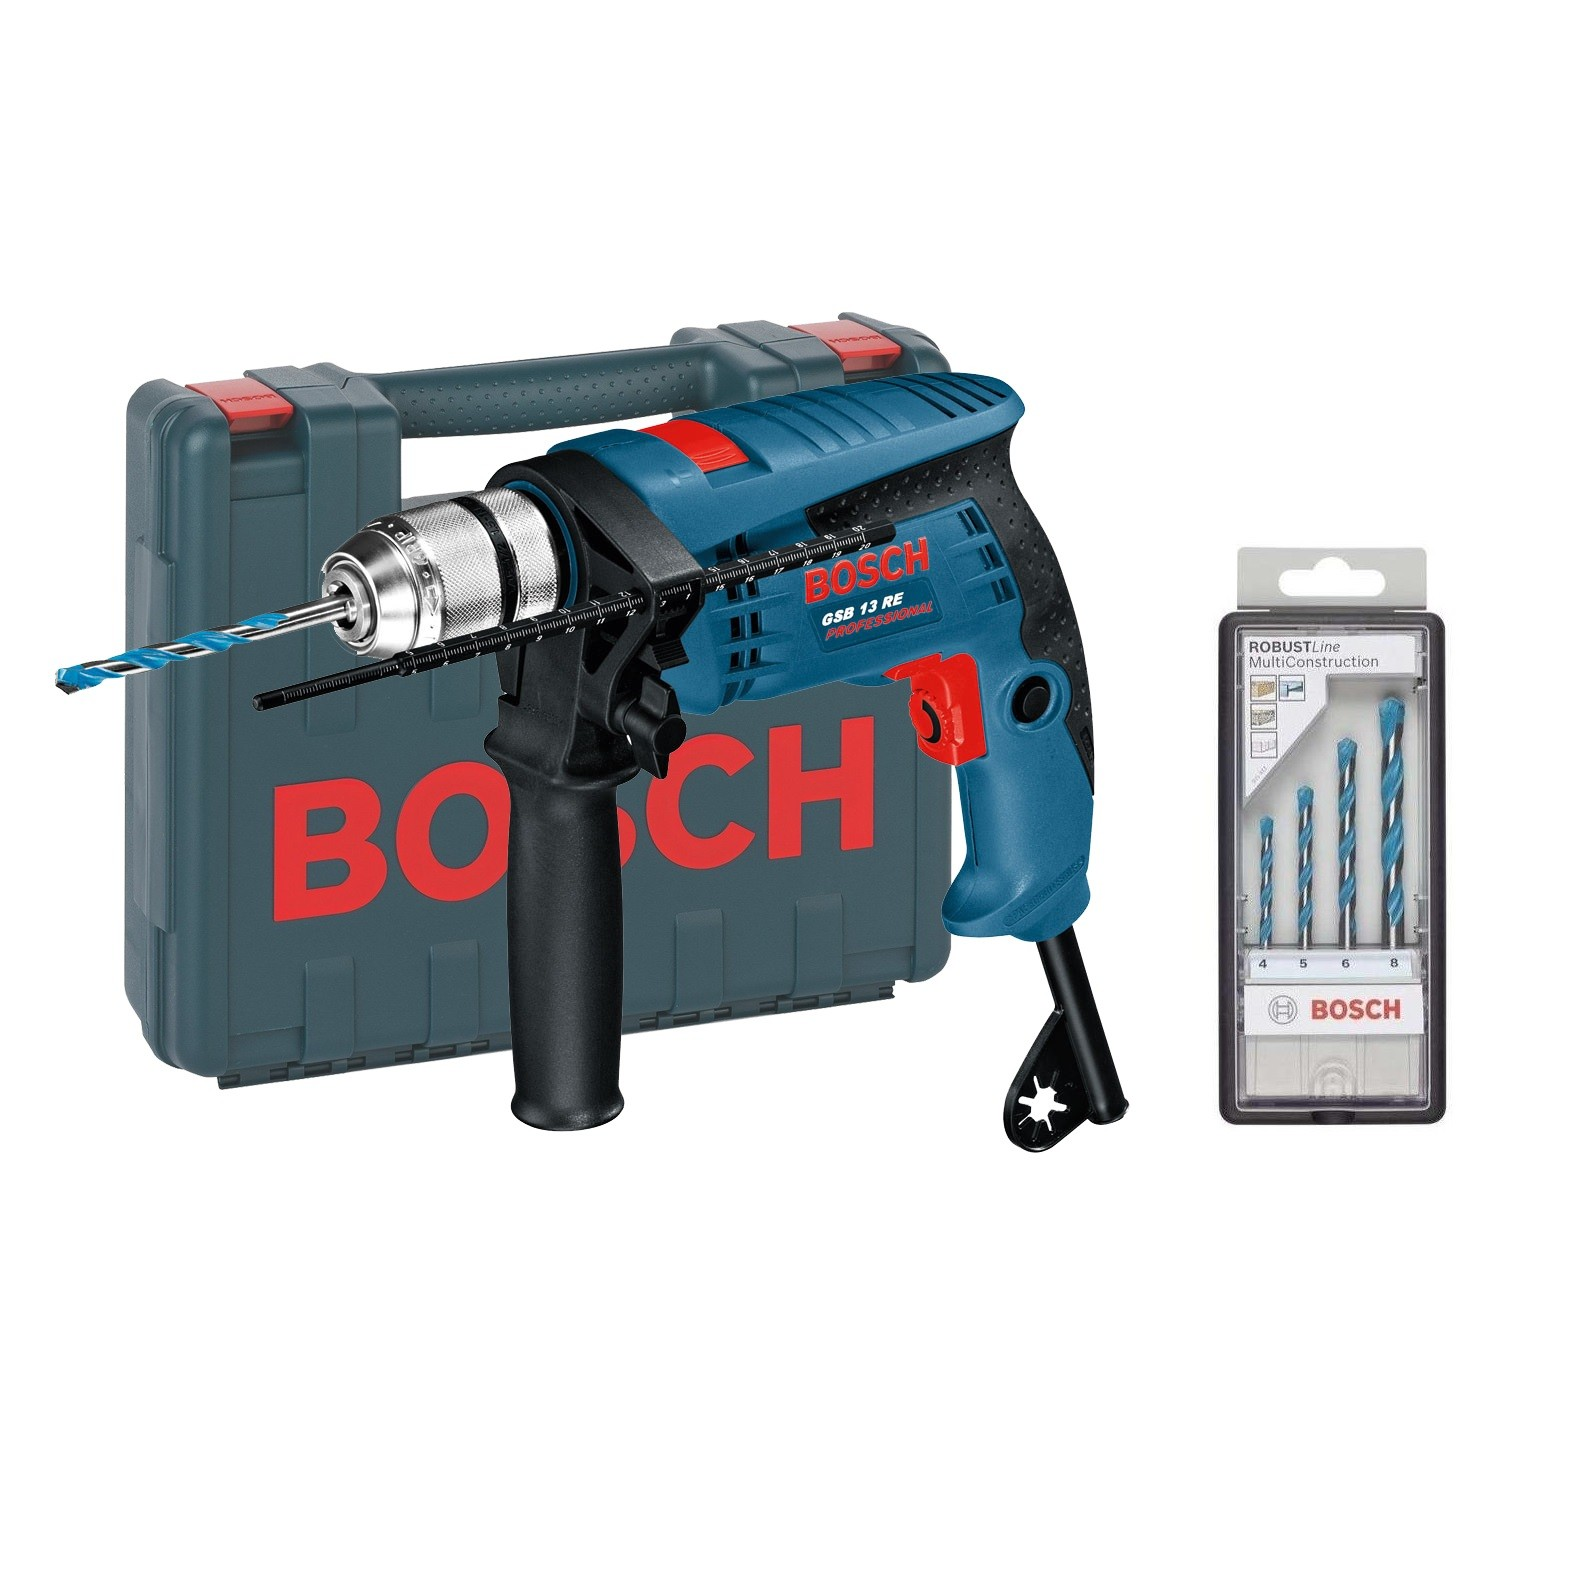 bosch gsb 13 re 600w impact percussion drill in carry case with drill bits powertool world. Black Bedroom Furniture Sets. Home Design Ideas